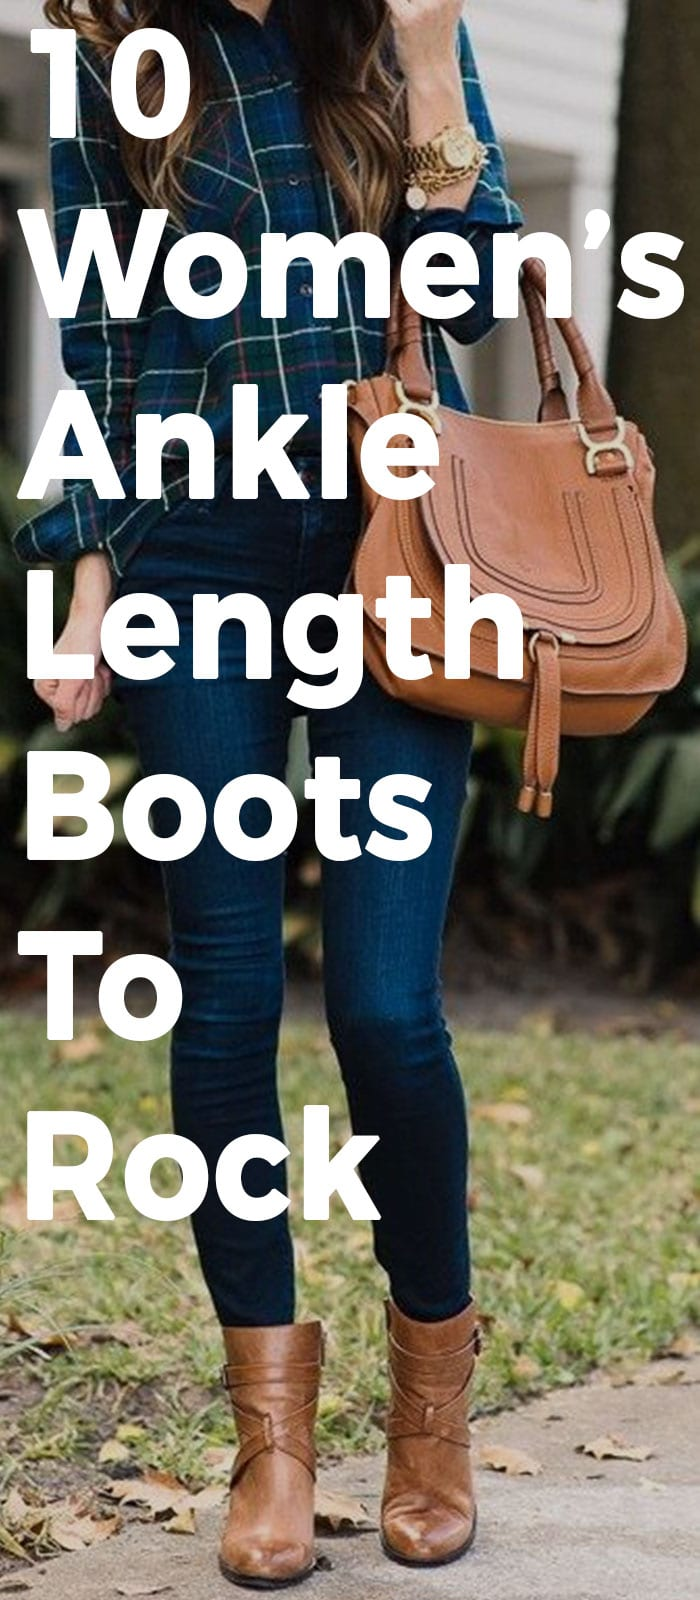 10 Women's Ankle Length Boots That Will Rock Any Outfit!